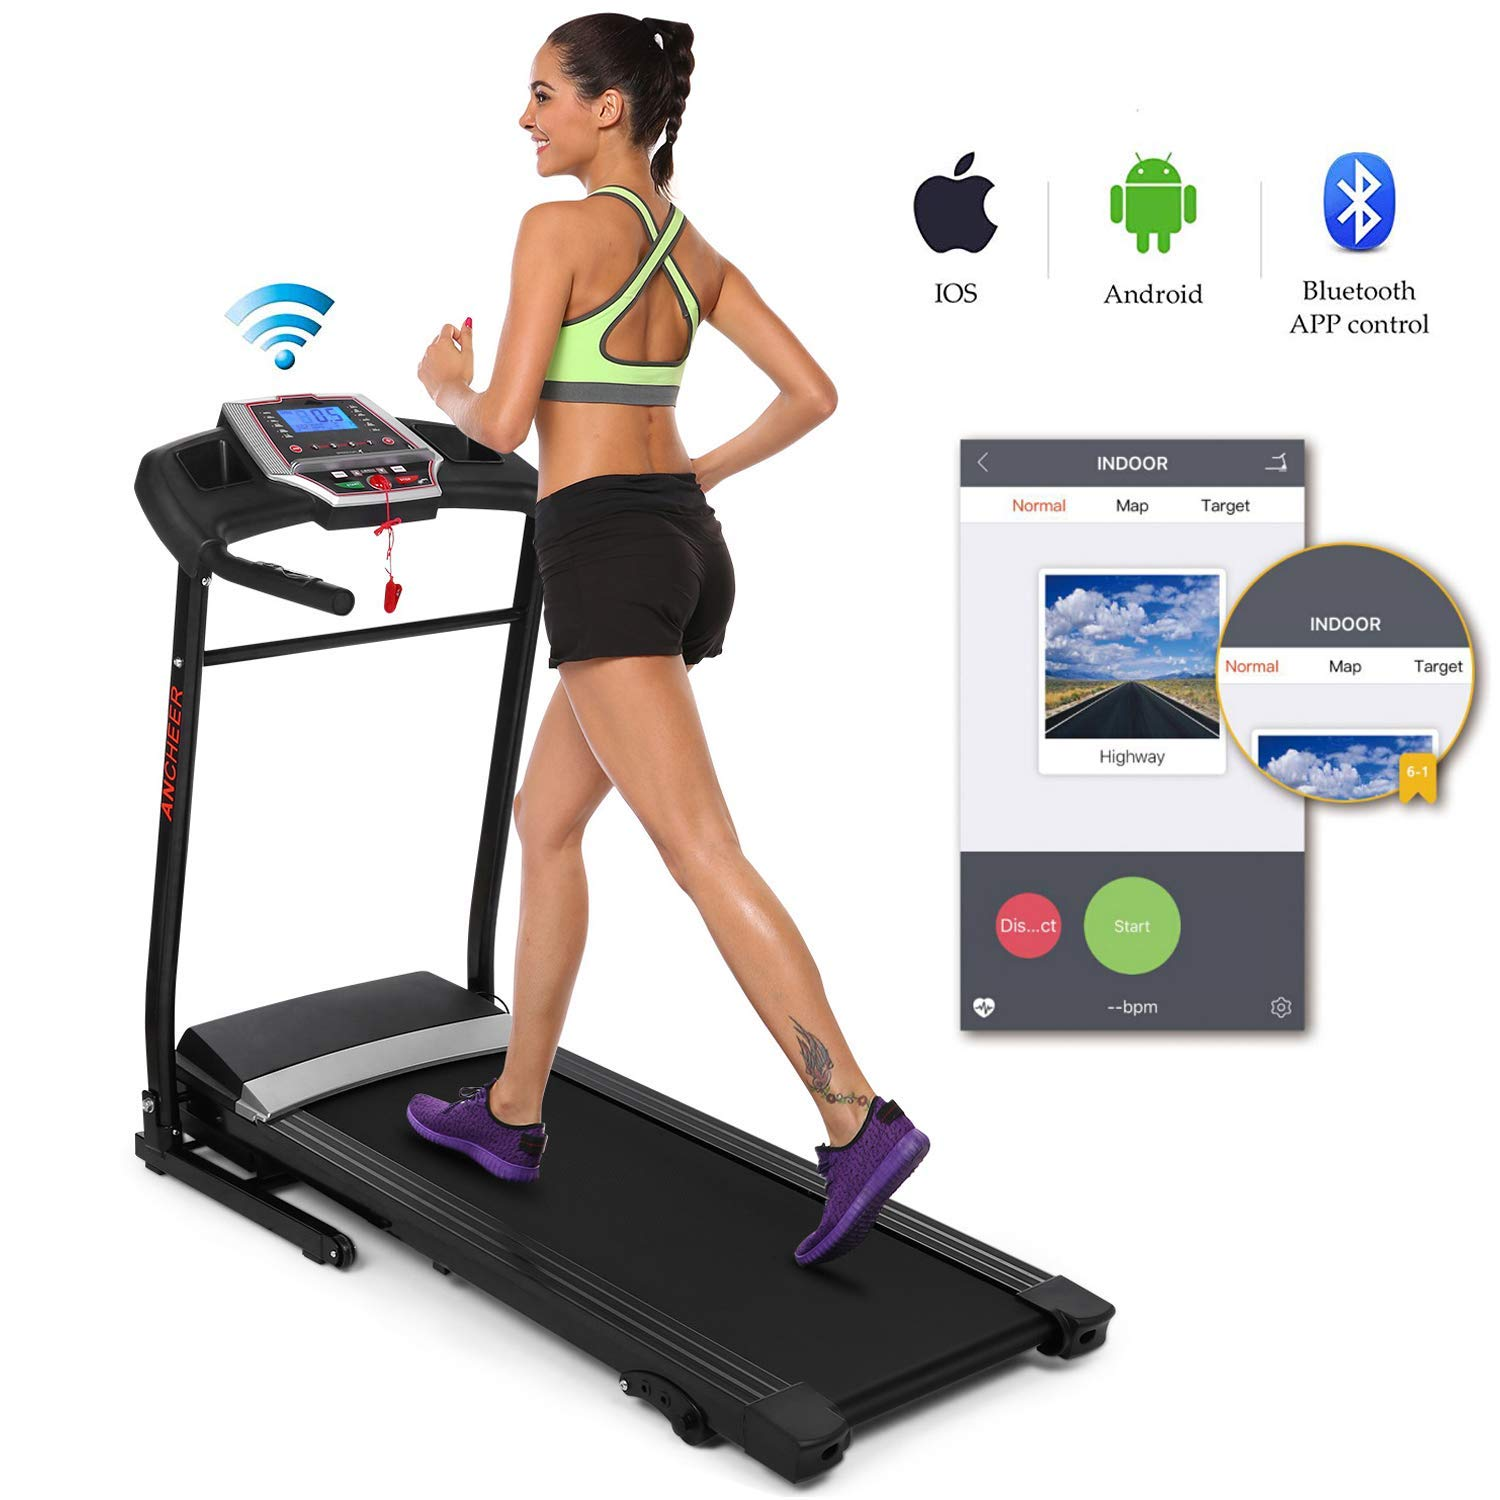 OppsDecor Folding Electric Treadmill,Power Motorized Fitness Running Machine Walking Treadmill APP Control for Home Gym Exercise